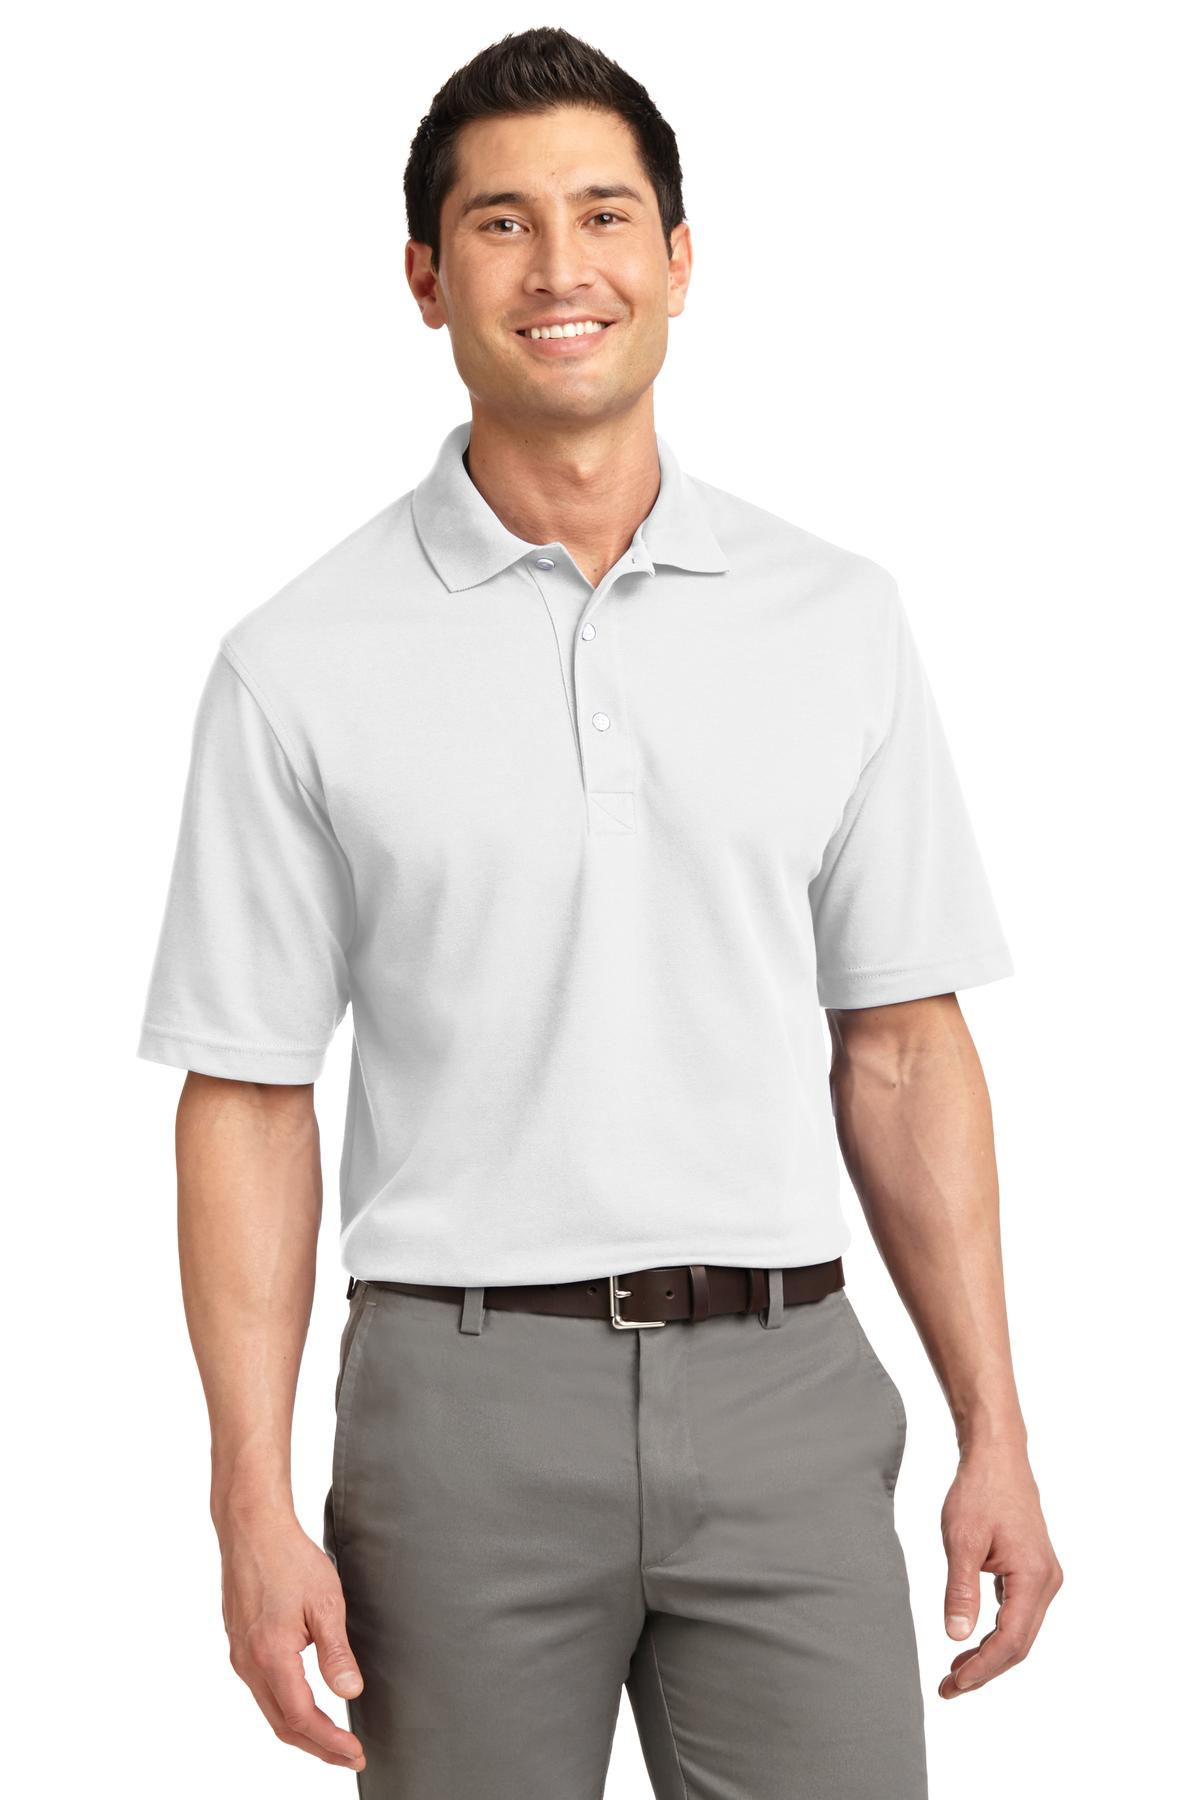 Port Authority® Rapid Dry Polo.-Port Authority